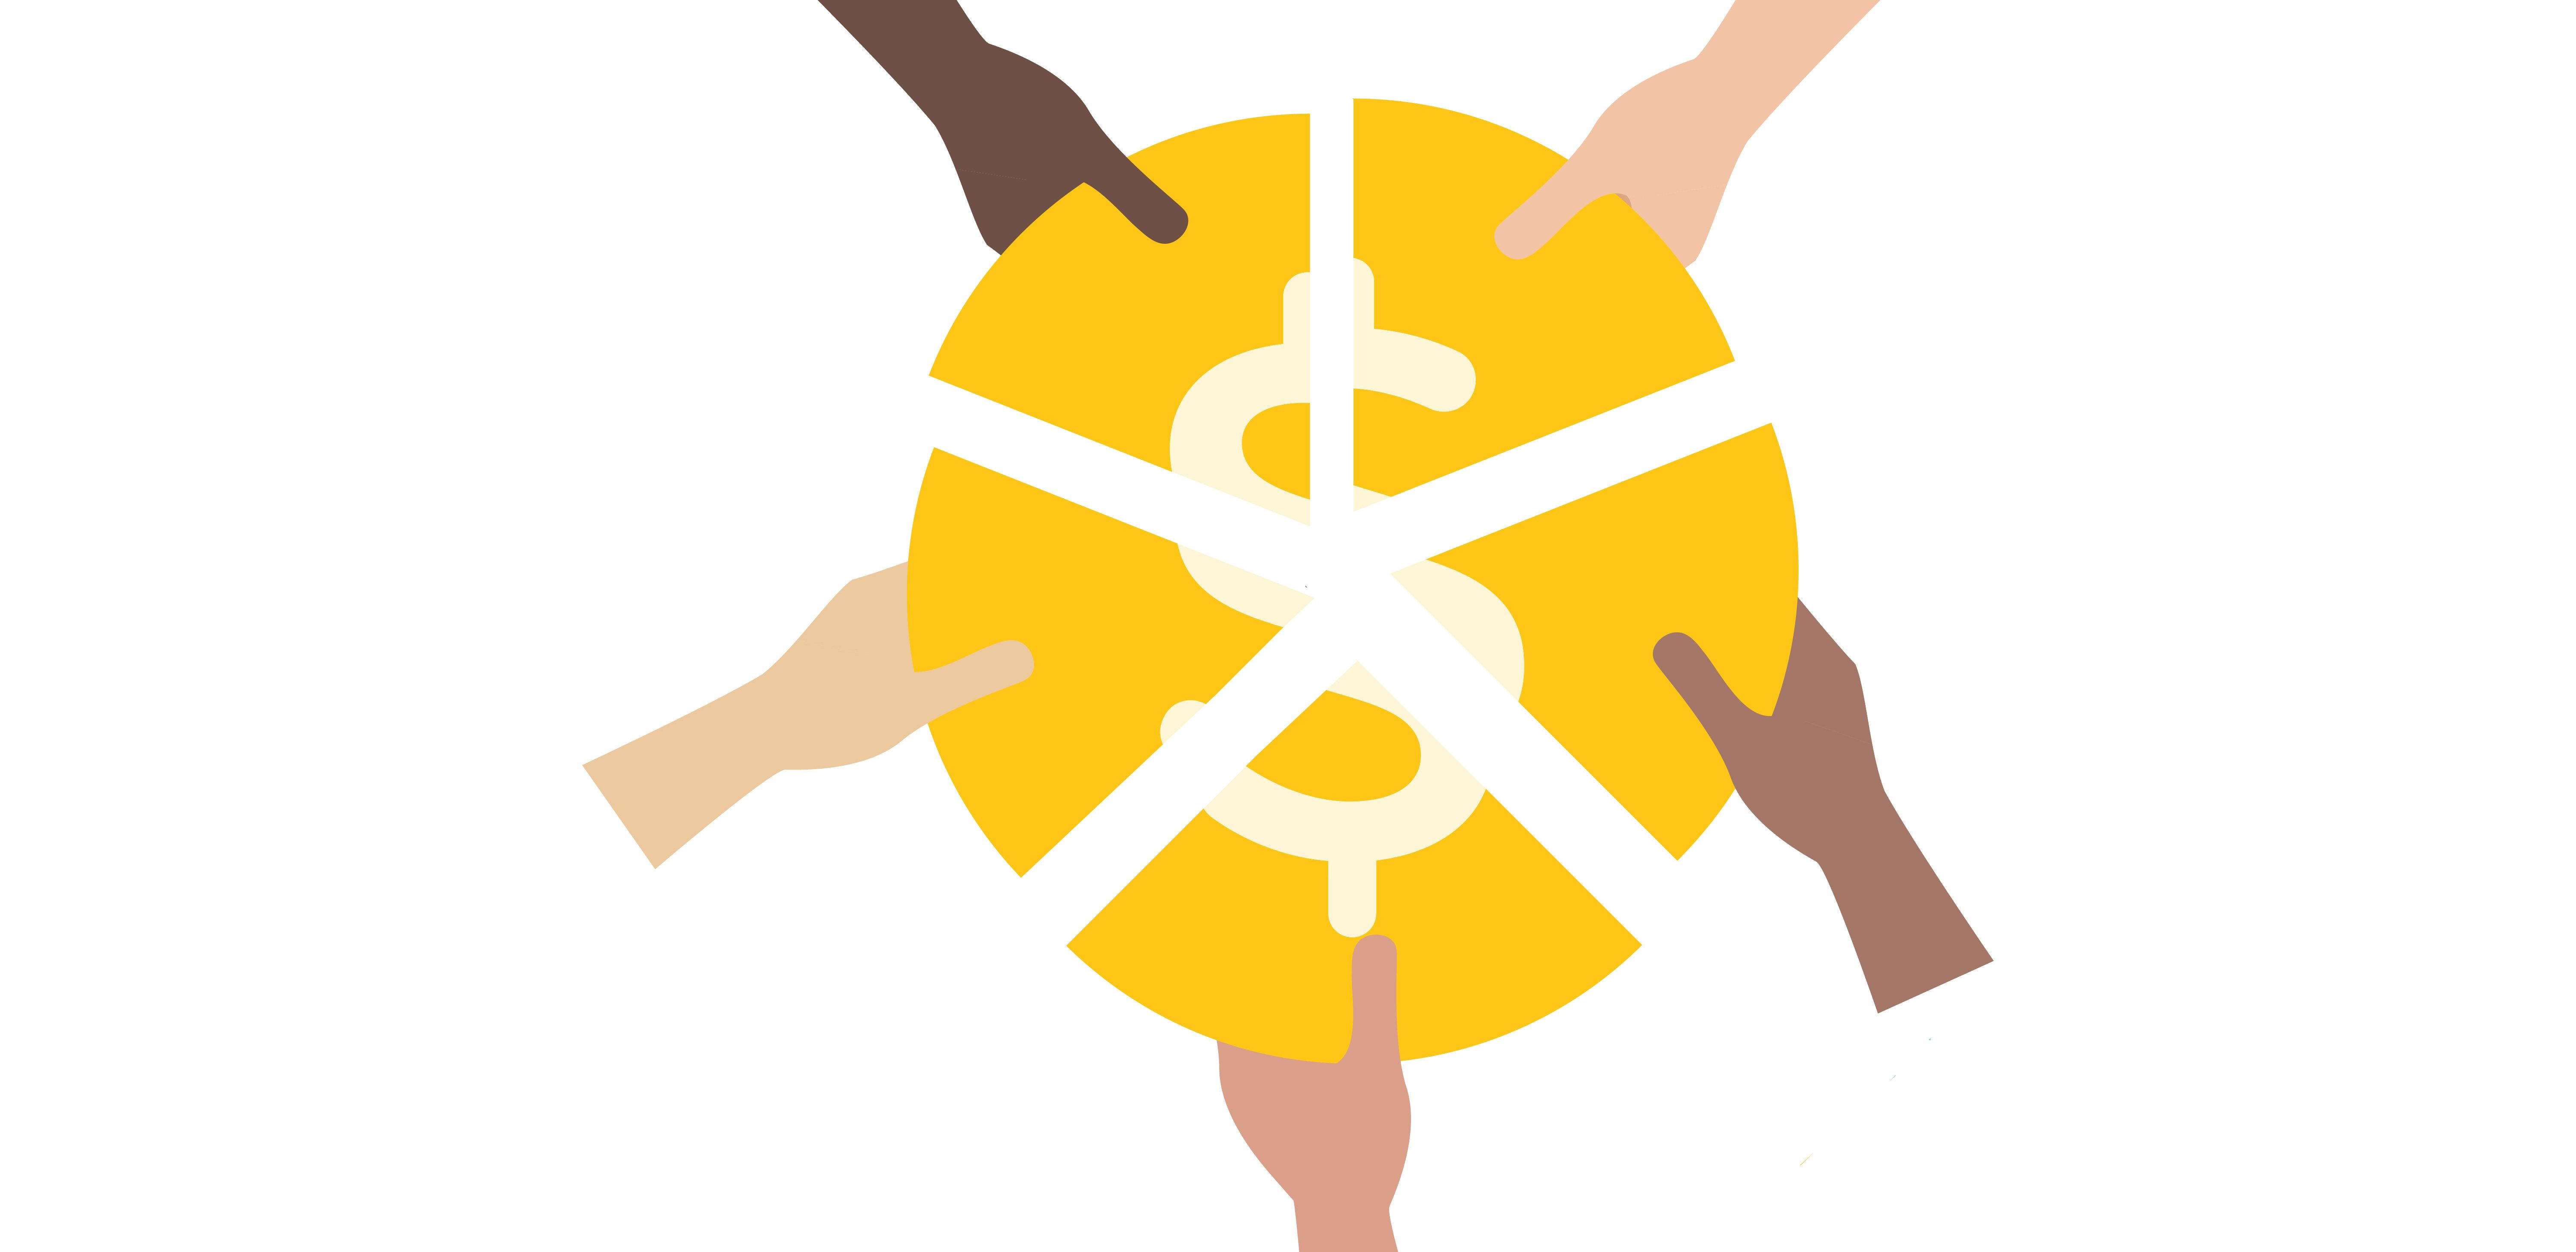 Hands reach in to take parts of a coin, representing sharing pieces of a pie.